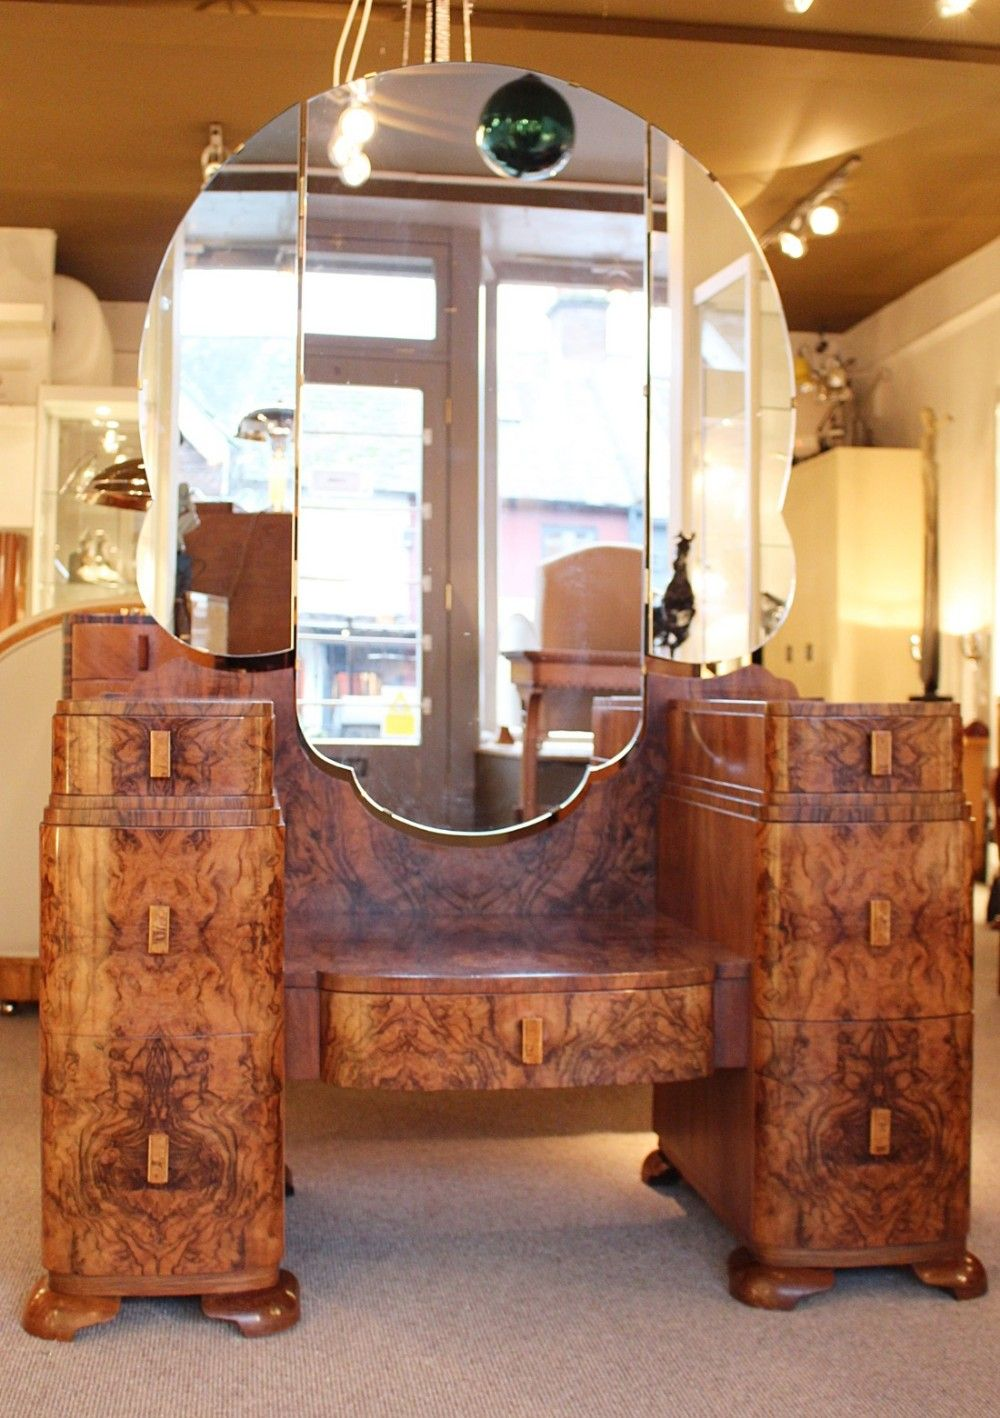 Art deco dressing table circa 1930 with images art